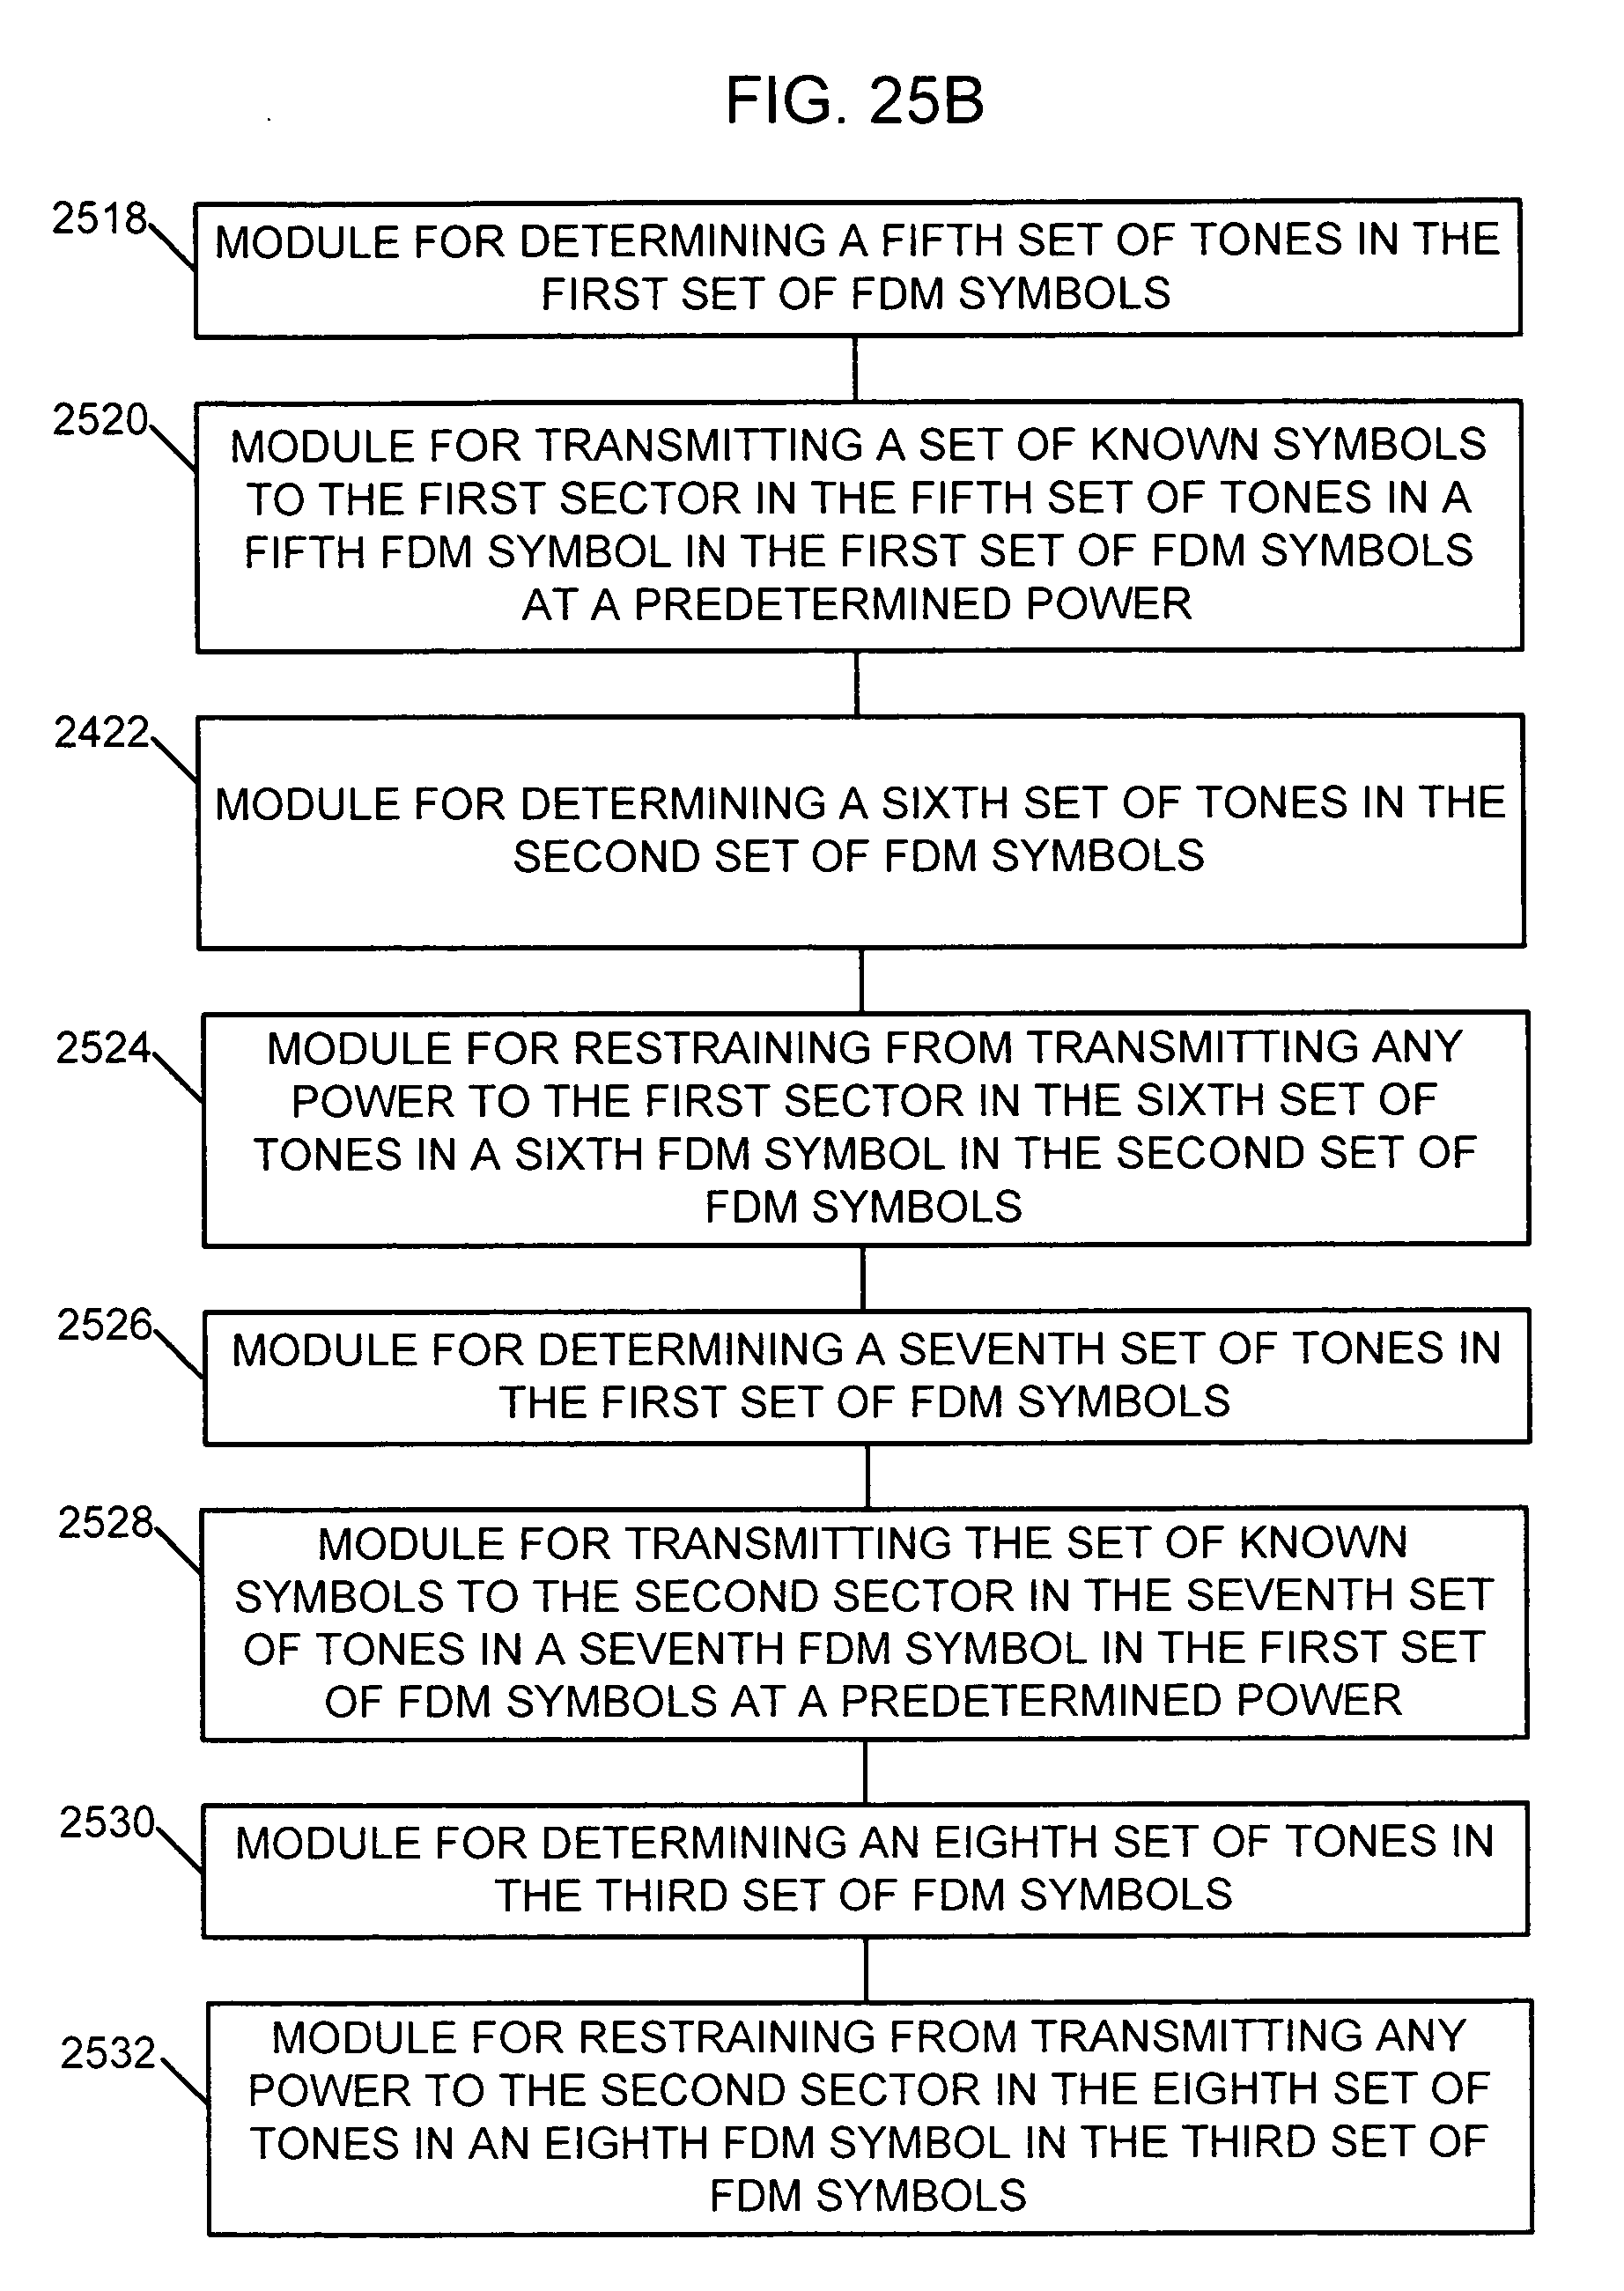 Brevet Us20080013500 Methods And Apparatus For Characterizing